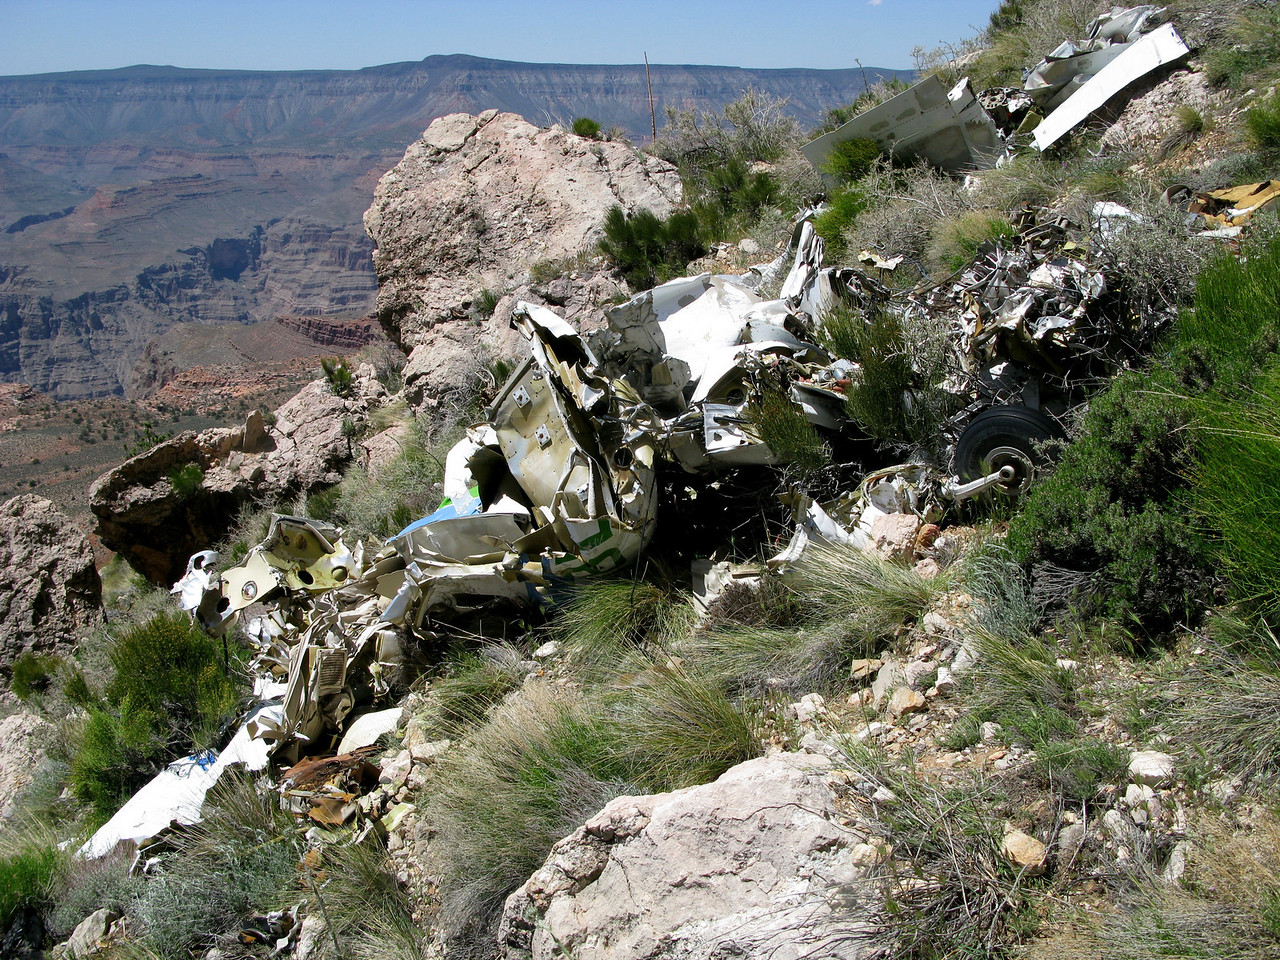 The fuselage of the Piper Chieftain was literally ripped apart by the tremendous impact against the cliff.